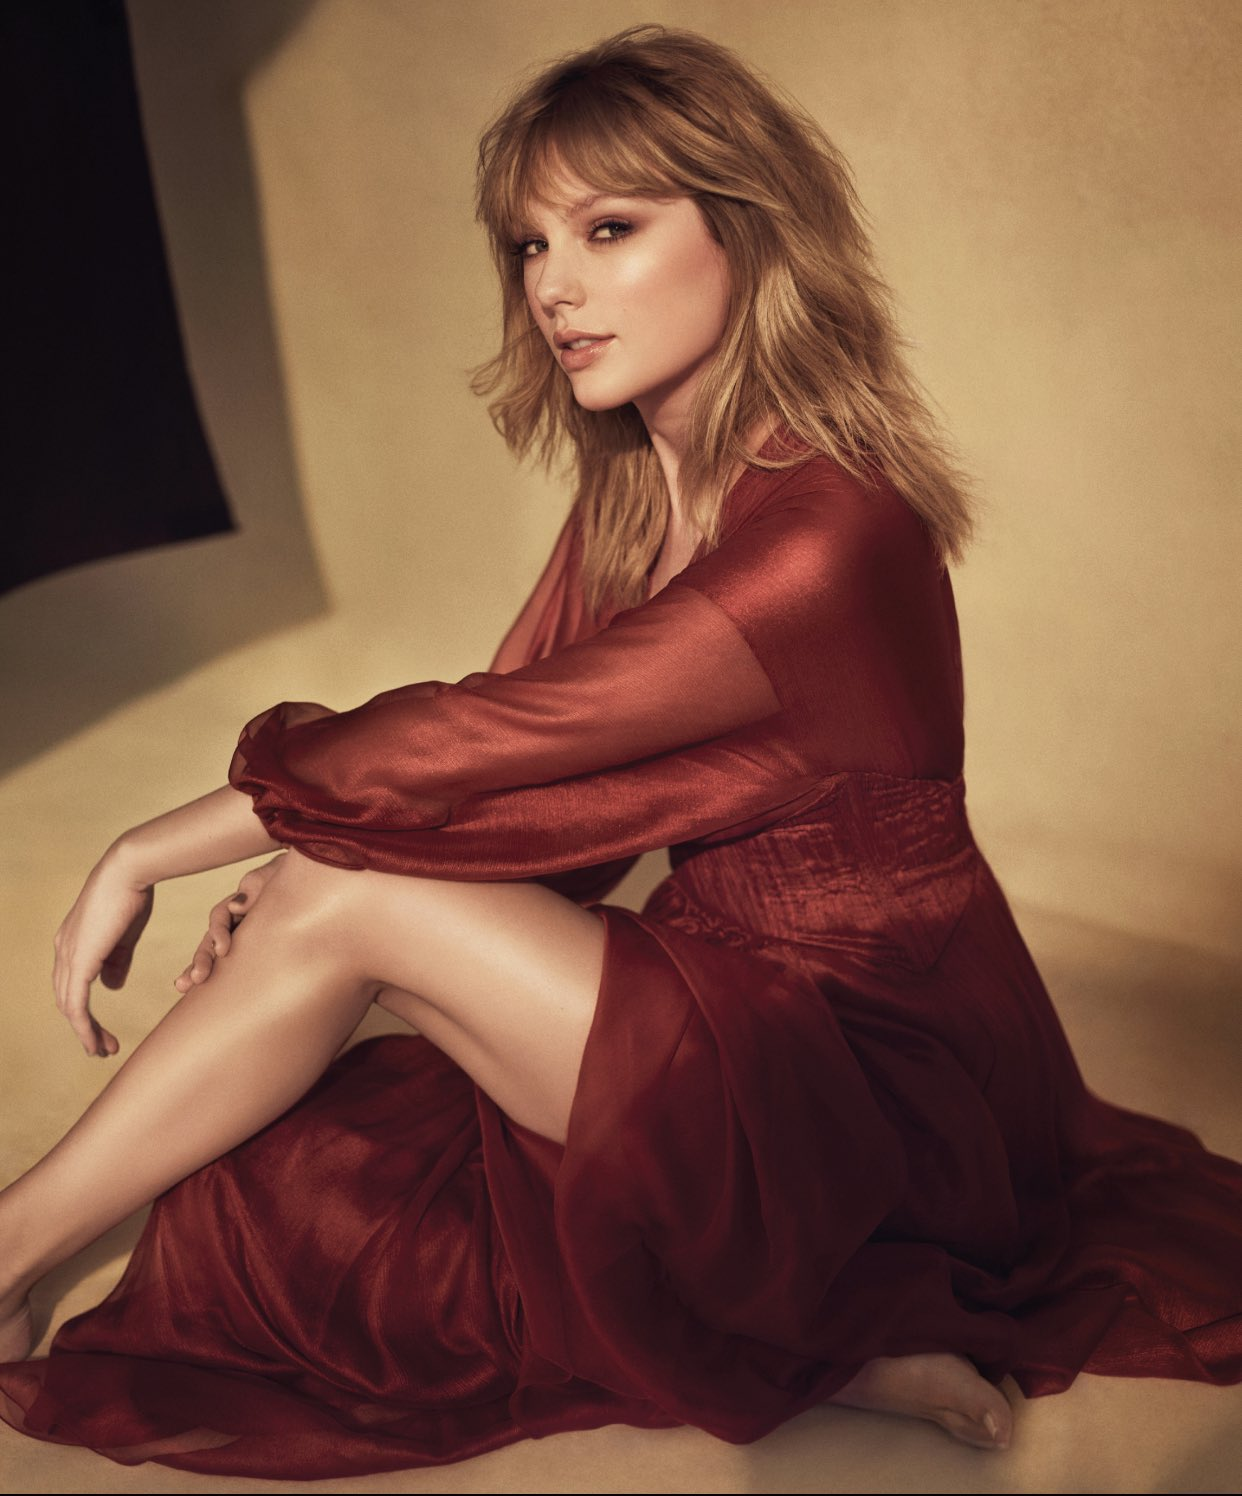 Taylor Swift Photo Gallery 2388 High Quality Pics Theplace